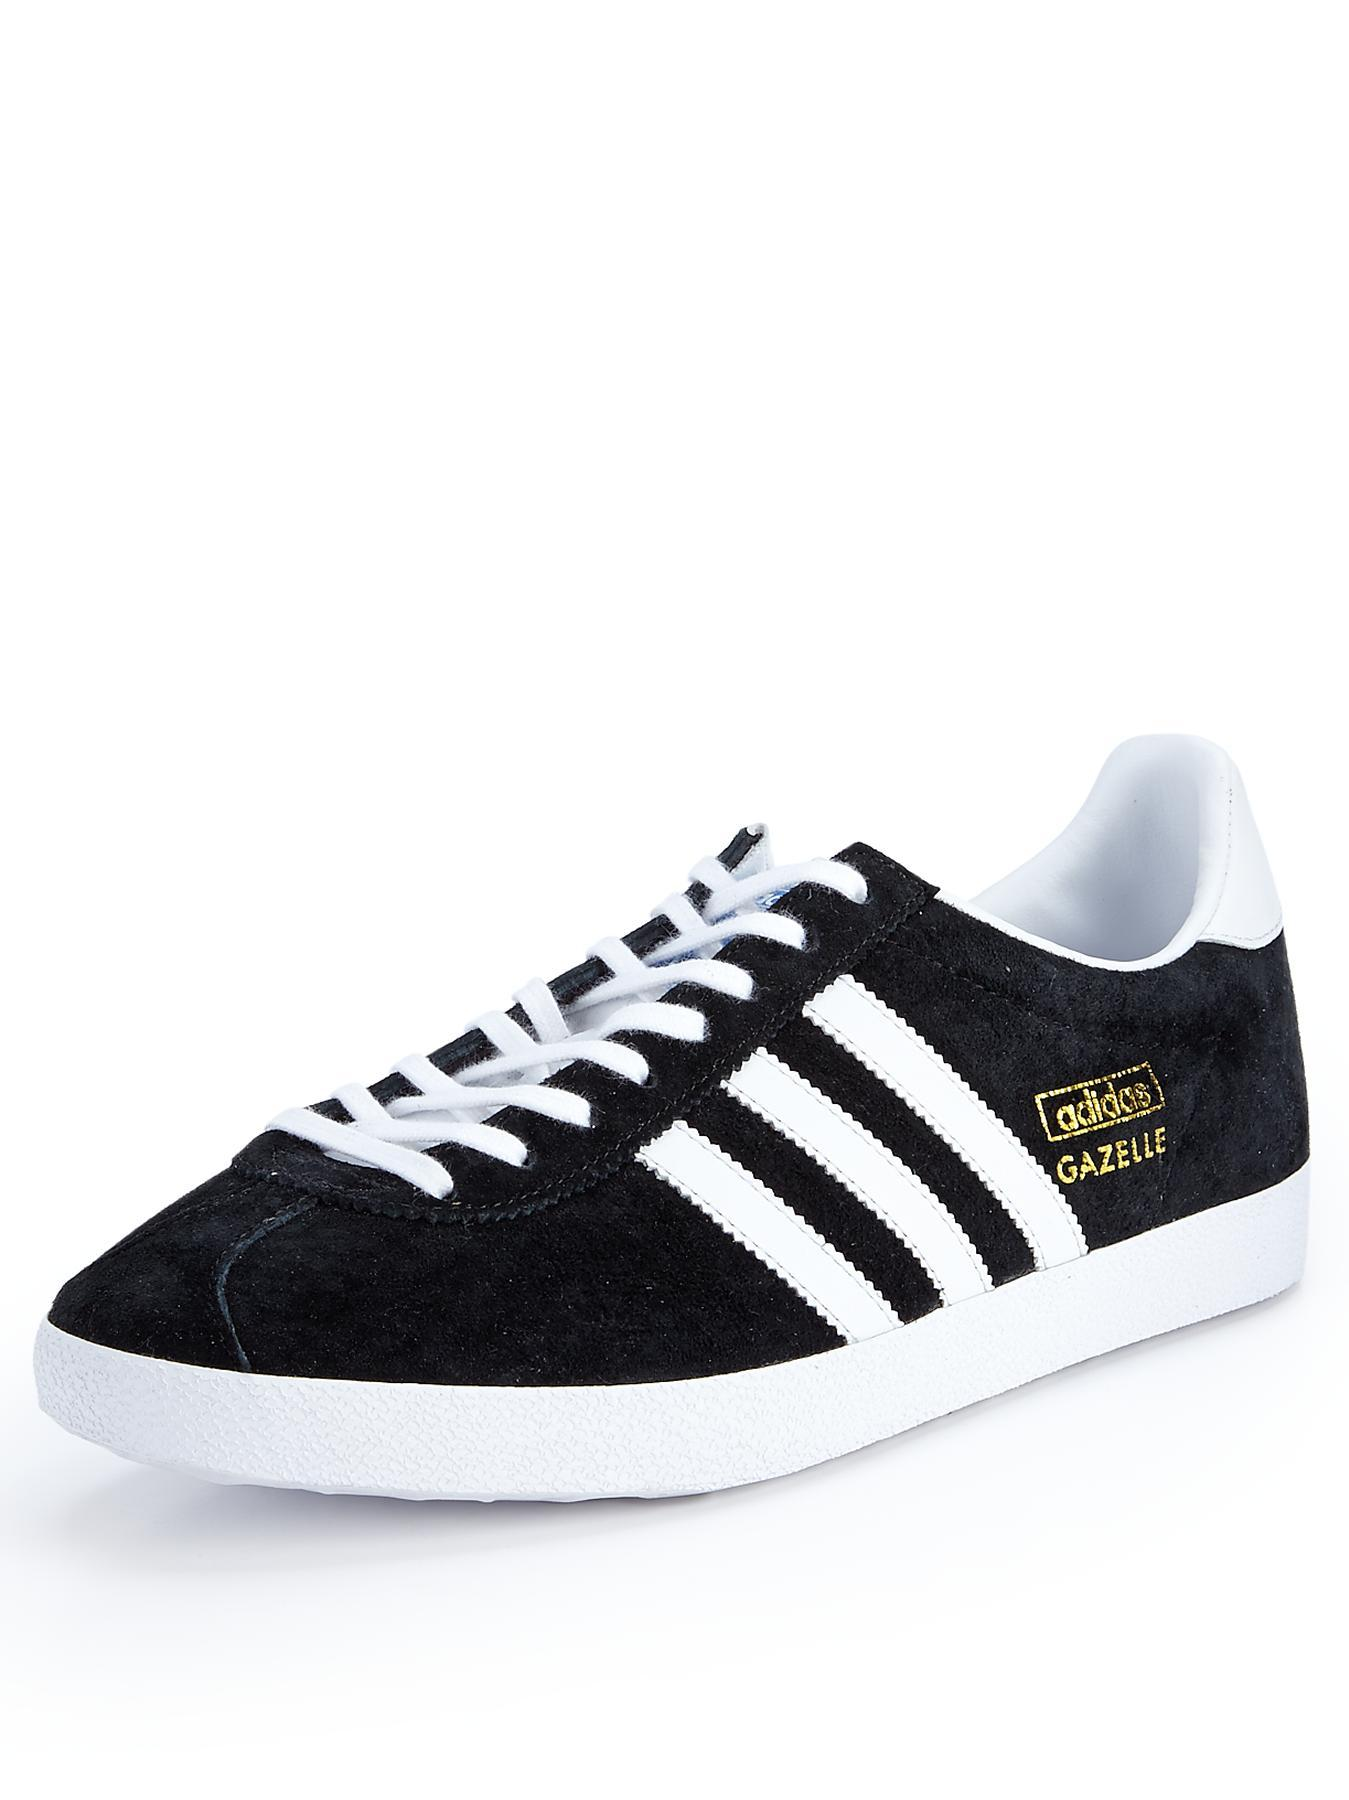 Gazelle OG Training Shoes, Black